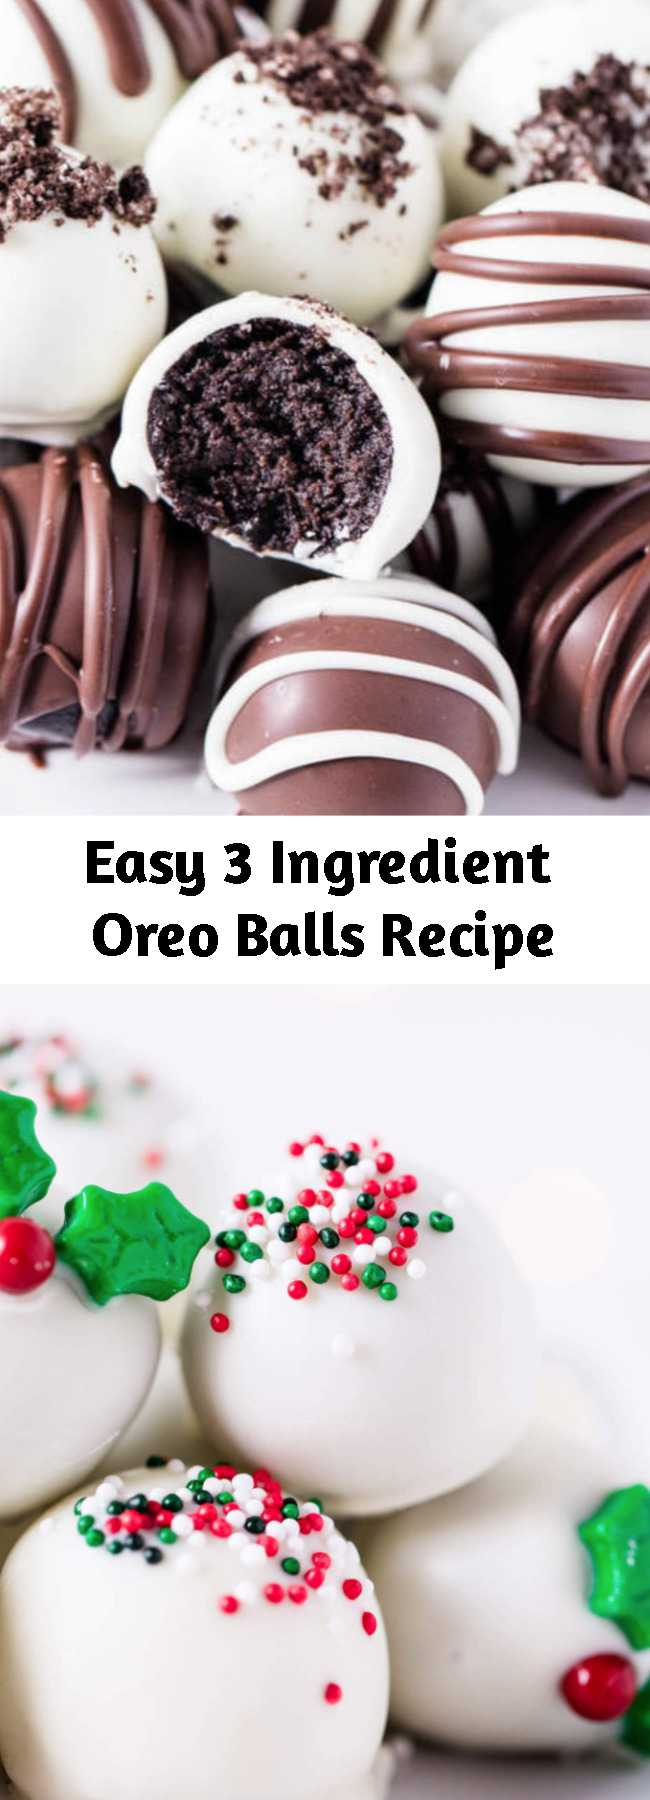 Easy 3 Ingredient Oreo Balls Recipe - These OREO balls are made with just 3 simple ingredients and are such an easy dessert recipe! They are fun, festive and great to make for entertaining. Drizzle with chocolate or top with your favorite colored sprinkles for the perfect decorative treat! #oreo #oreodessert #oreocookieballs #chocolate #chocolaterecipes #cookiedecorating #cookierecipes #truffles #easyrecipe